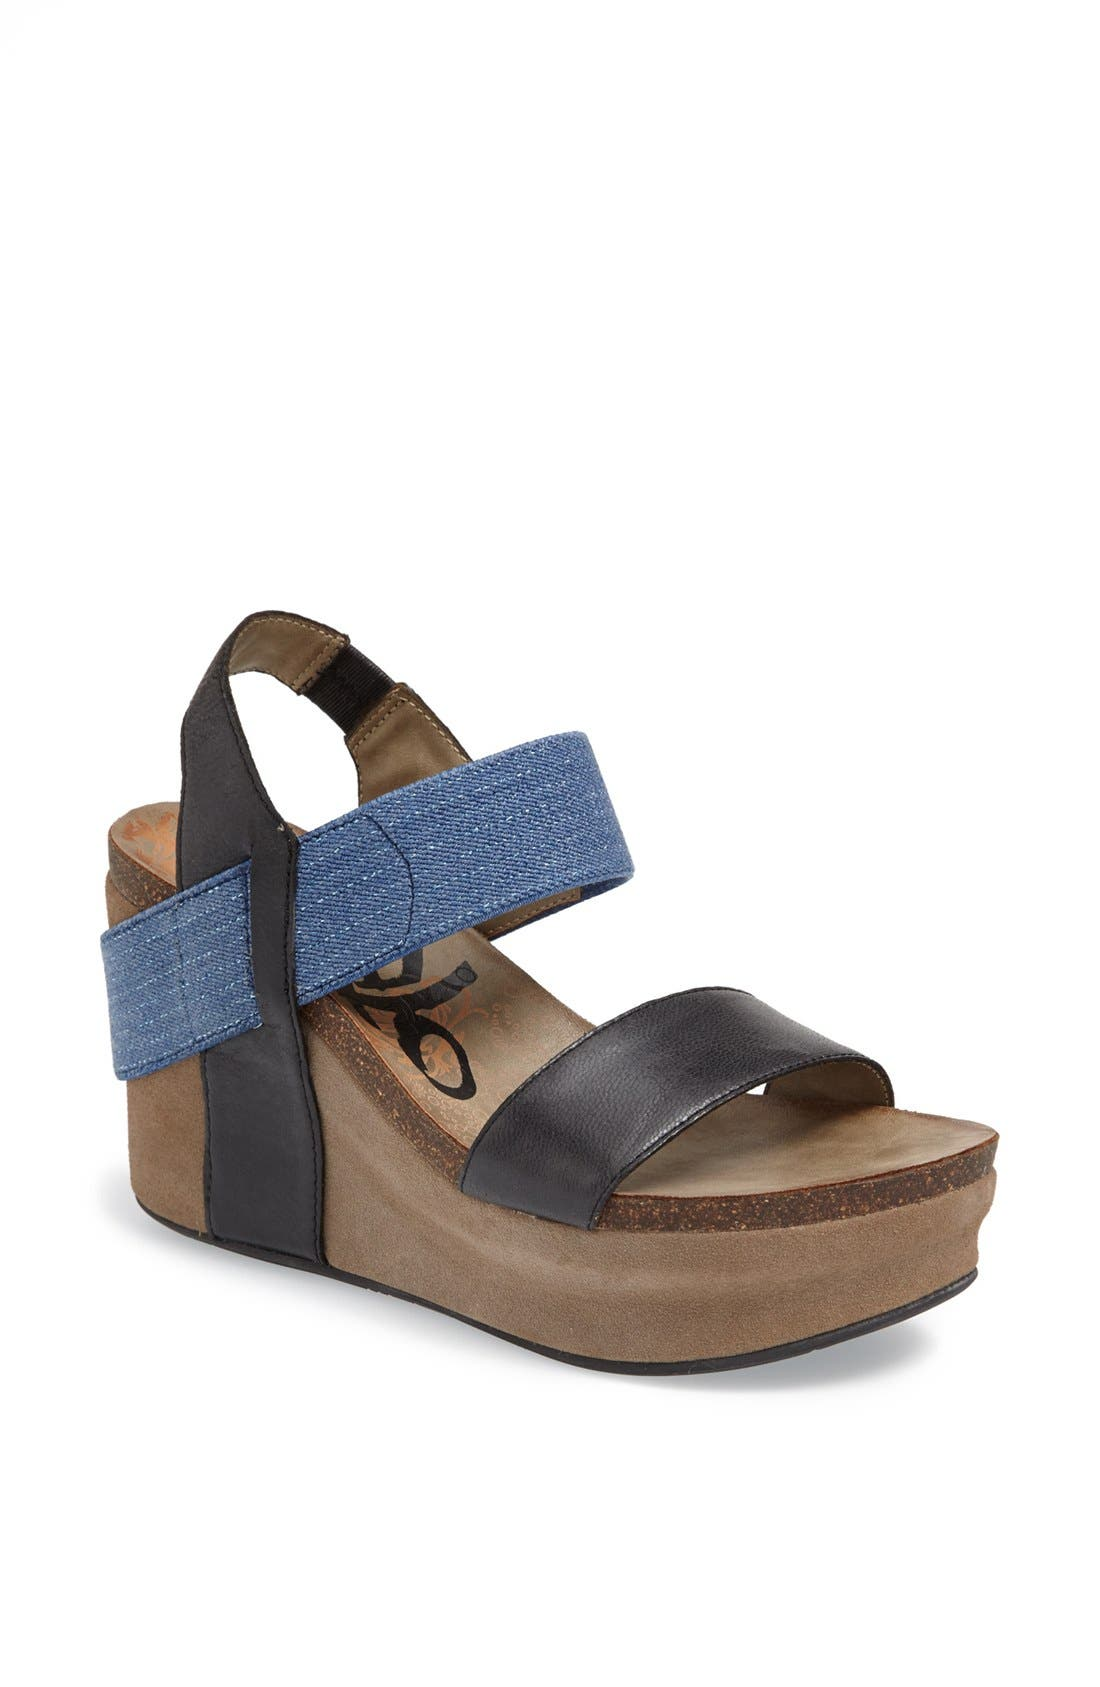 'Bushnell' Wedge Sandal,                             Main thumbnail 11, color,